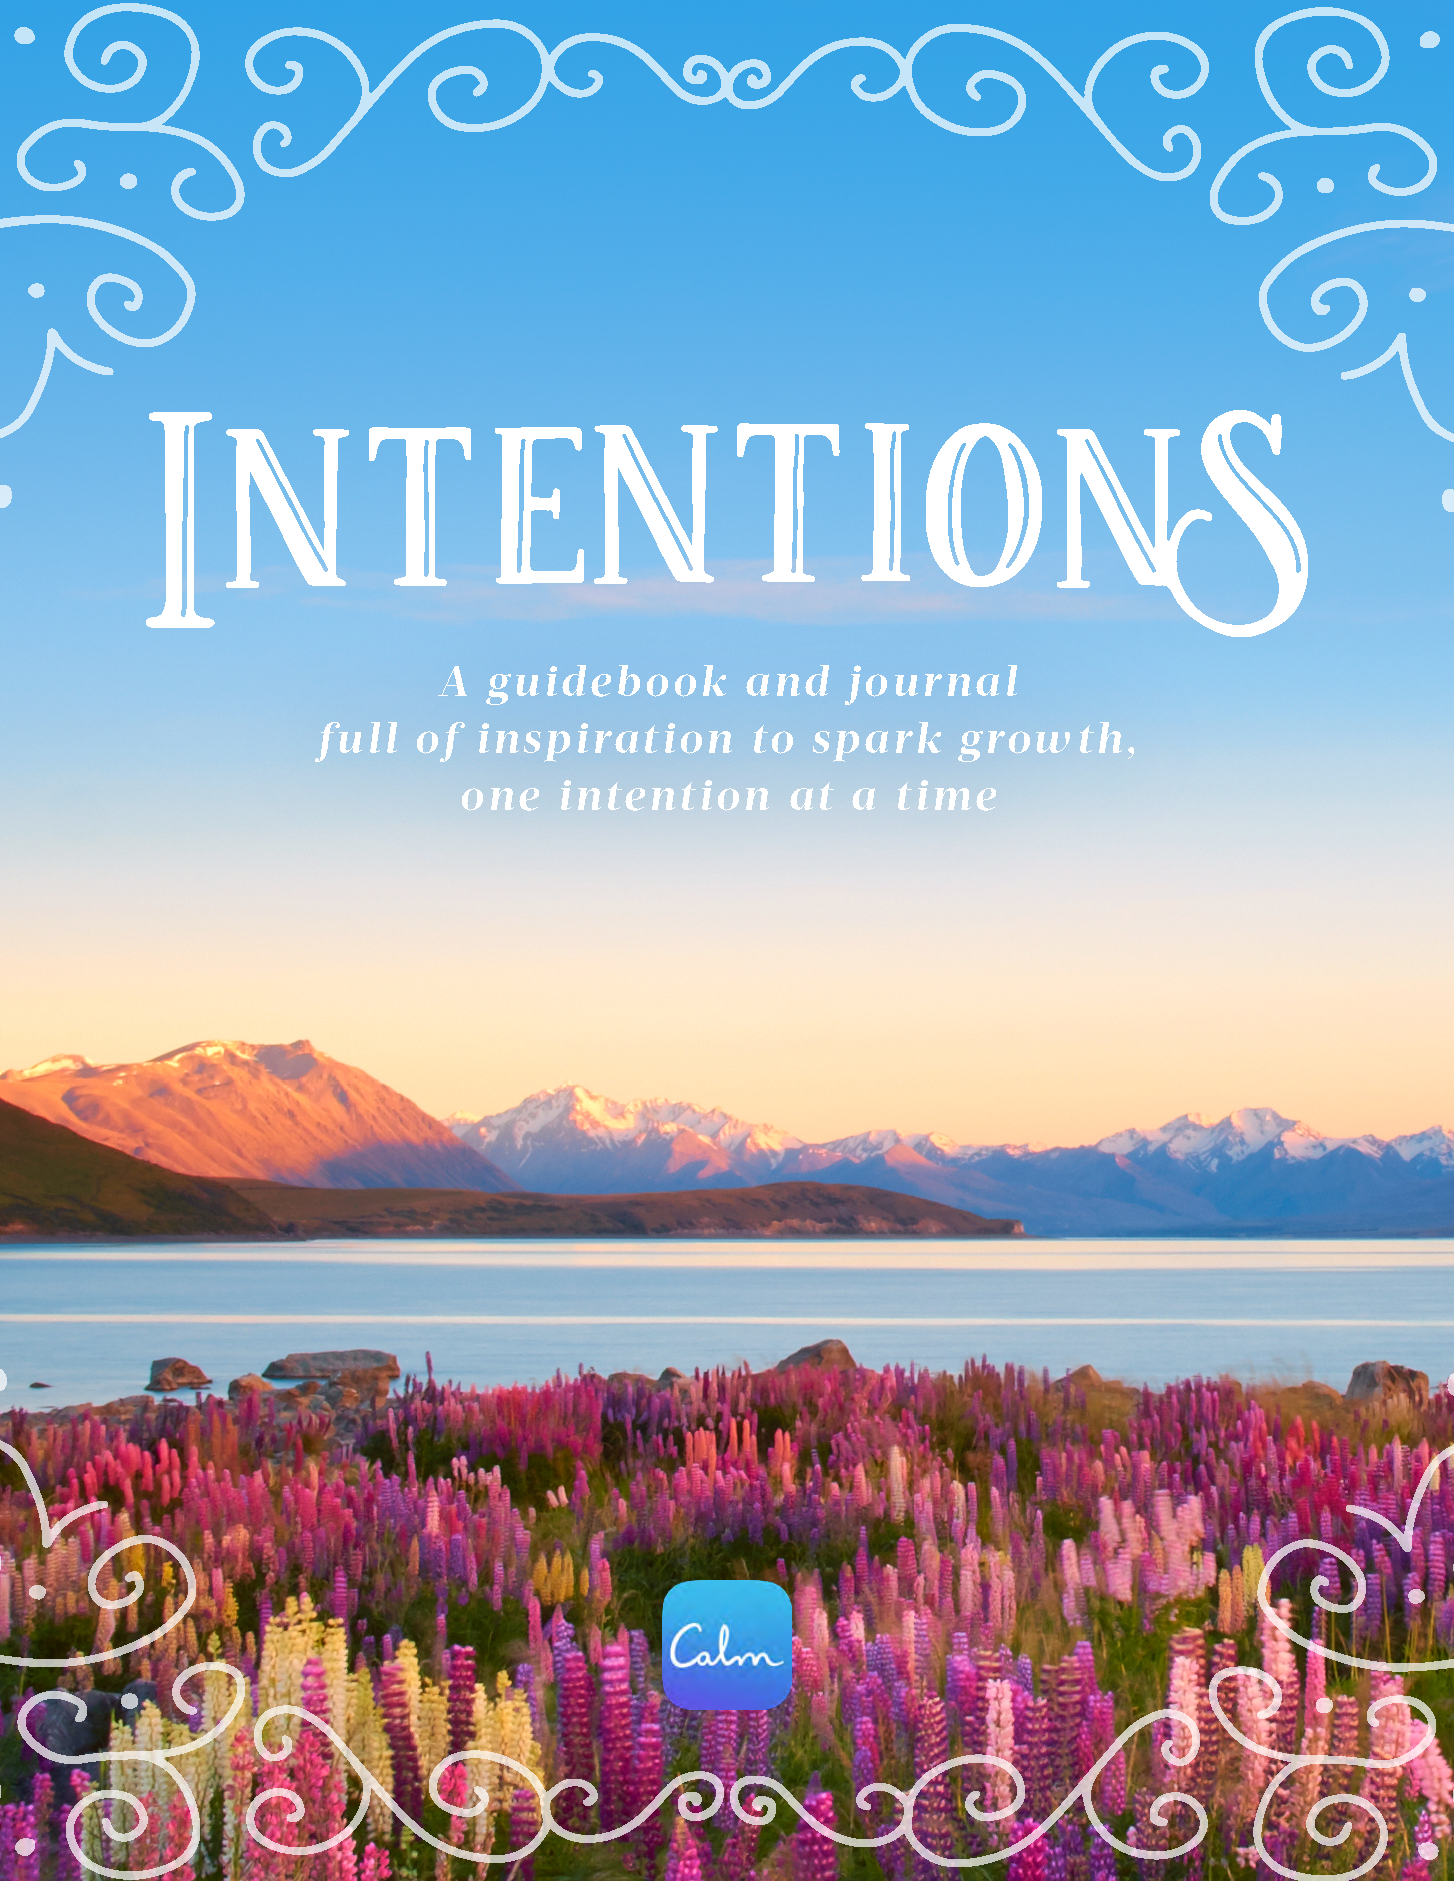 Calm Intentions Journal LR_Page_01.png